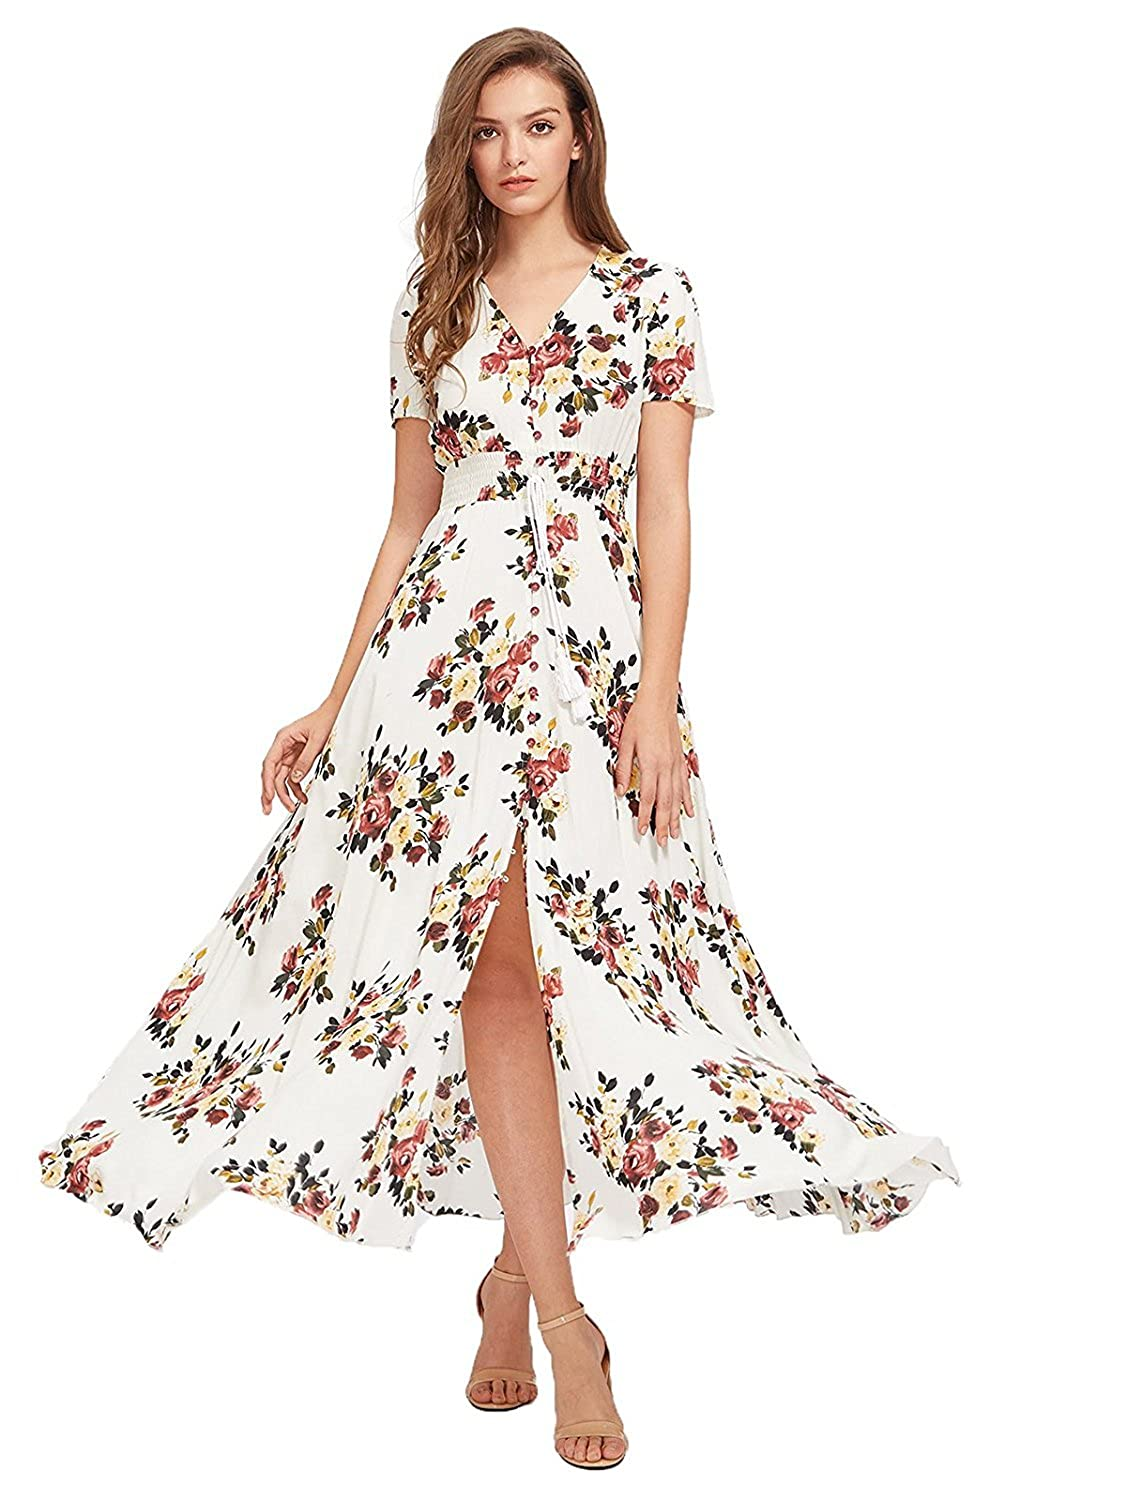 e822ca7bf8 Milumia Women's Button Up Split Floral Print Flowy Party Maxi Dress at  Amazon Women's Clothing store: